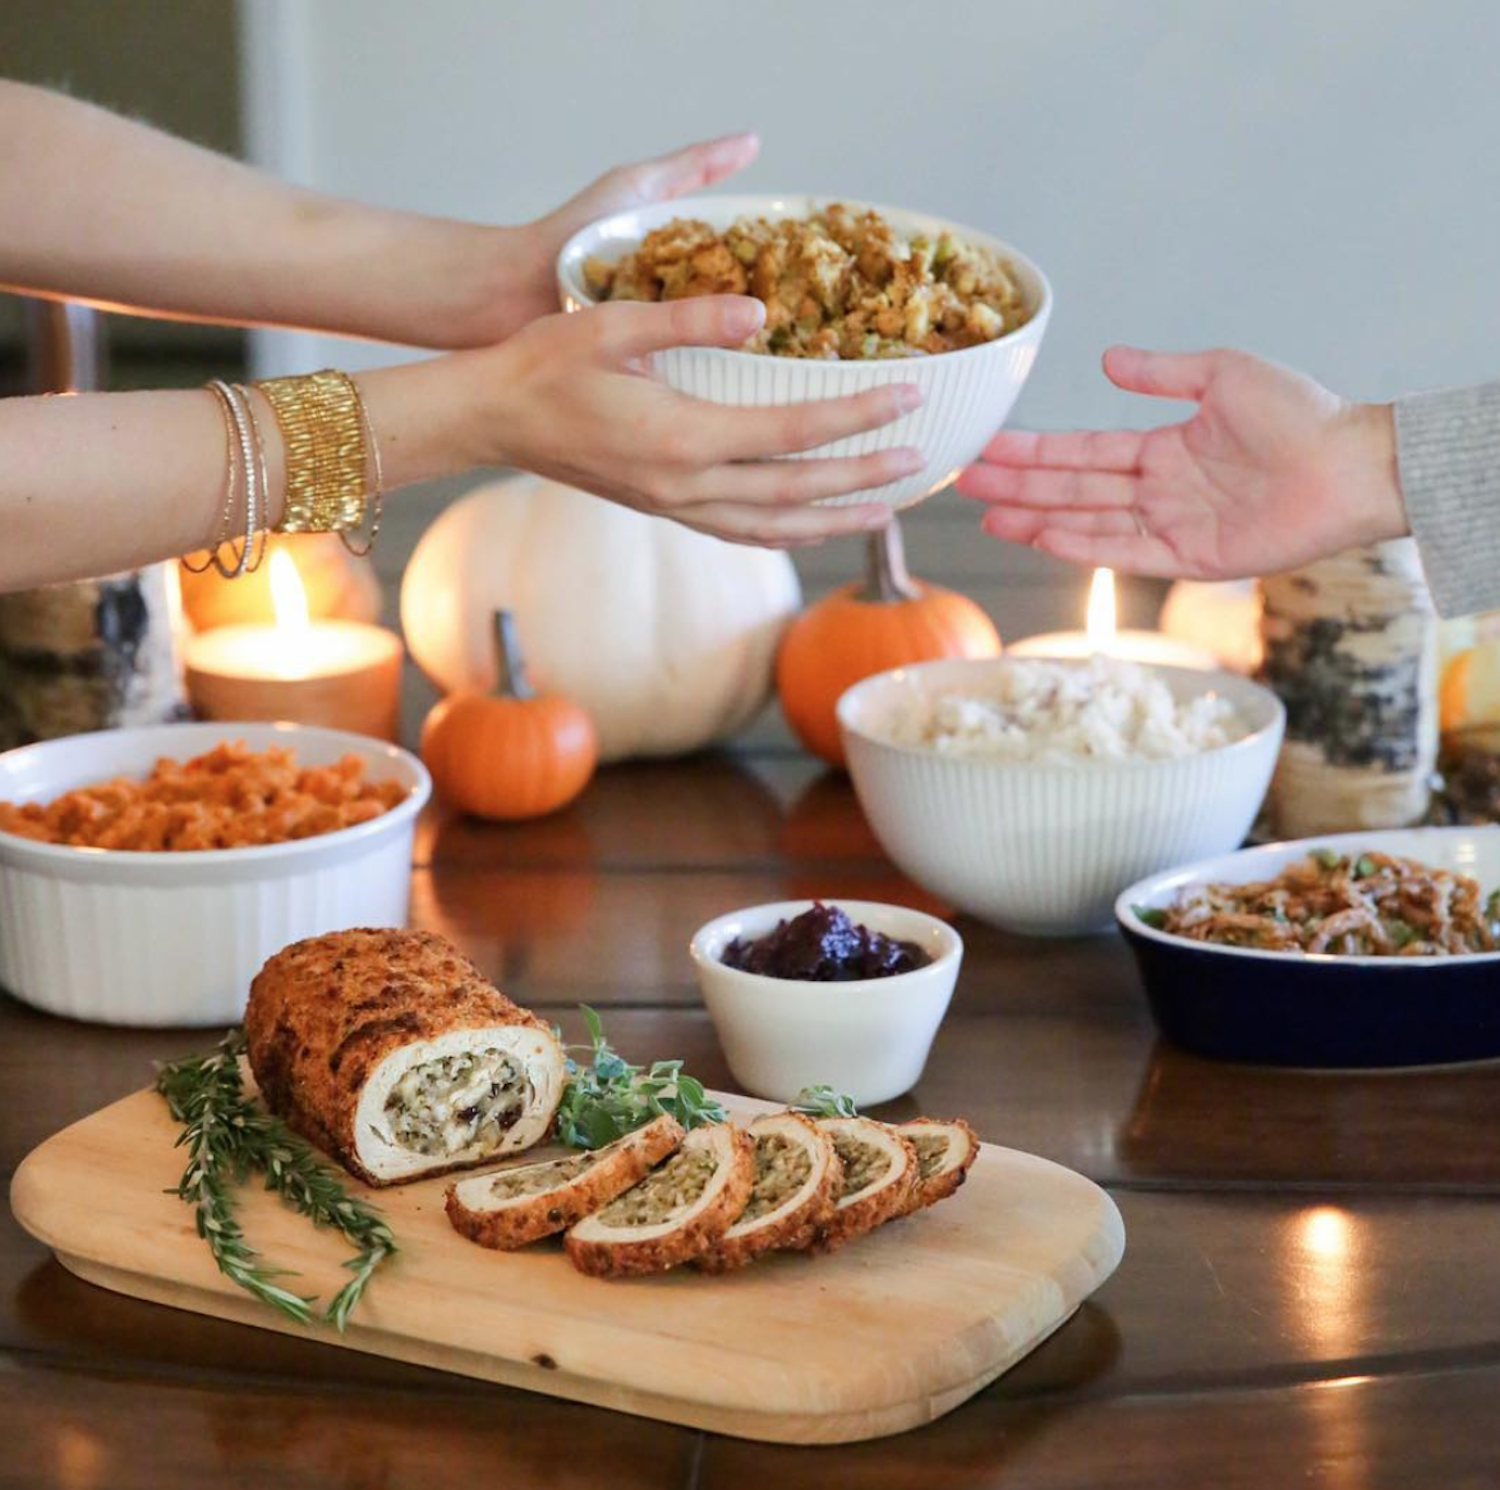 Give Thanks: Veggie Grill Just Launched a Loaded Vegan Thanksgiving Feast